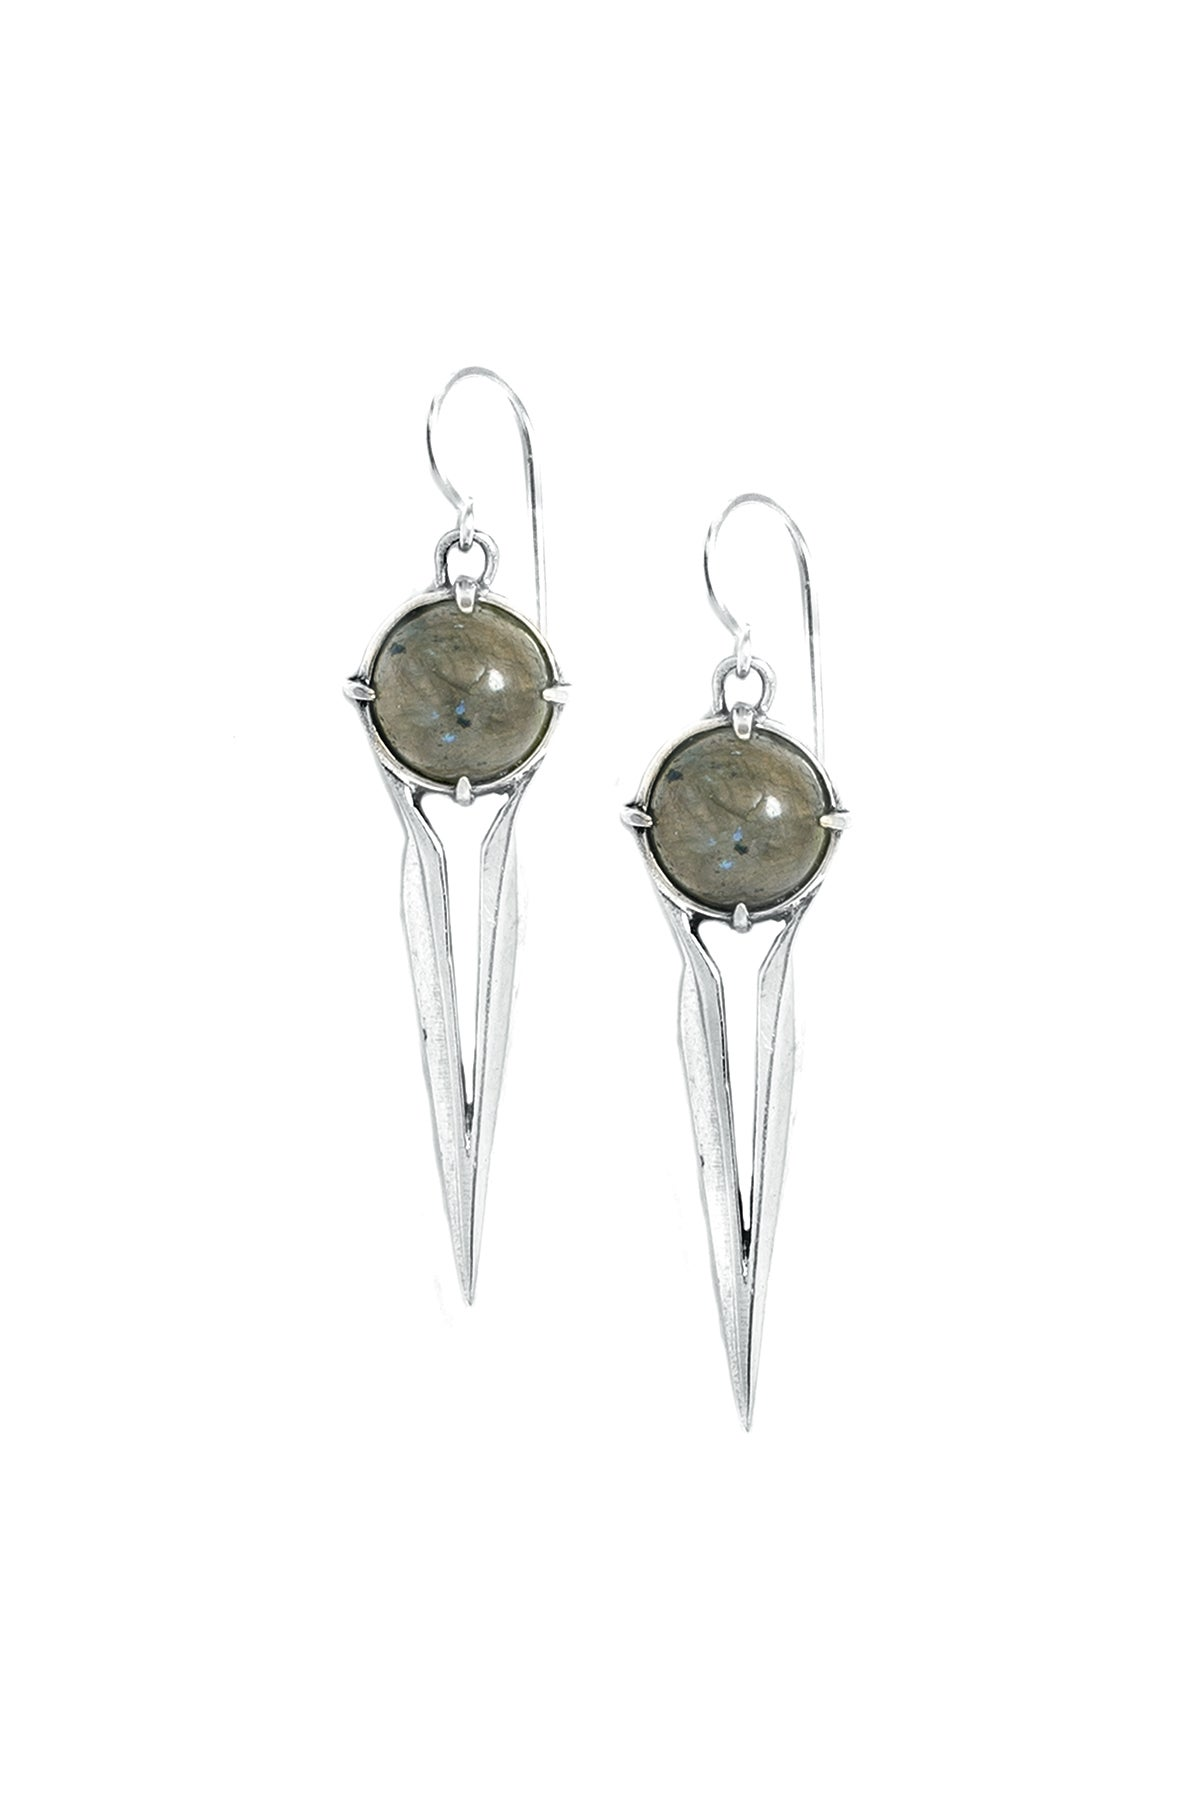 Image of LABRADORITE FALCON EARRINGS - SILVER